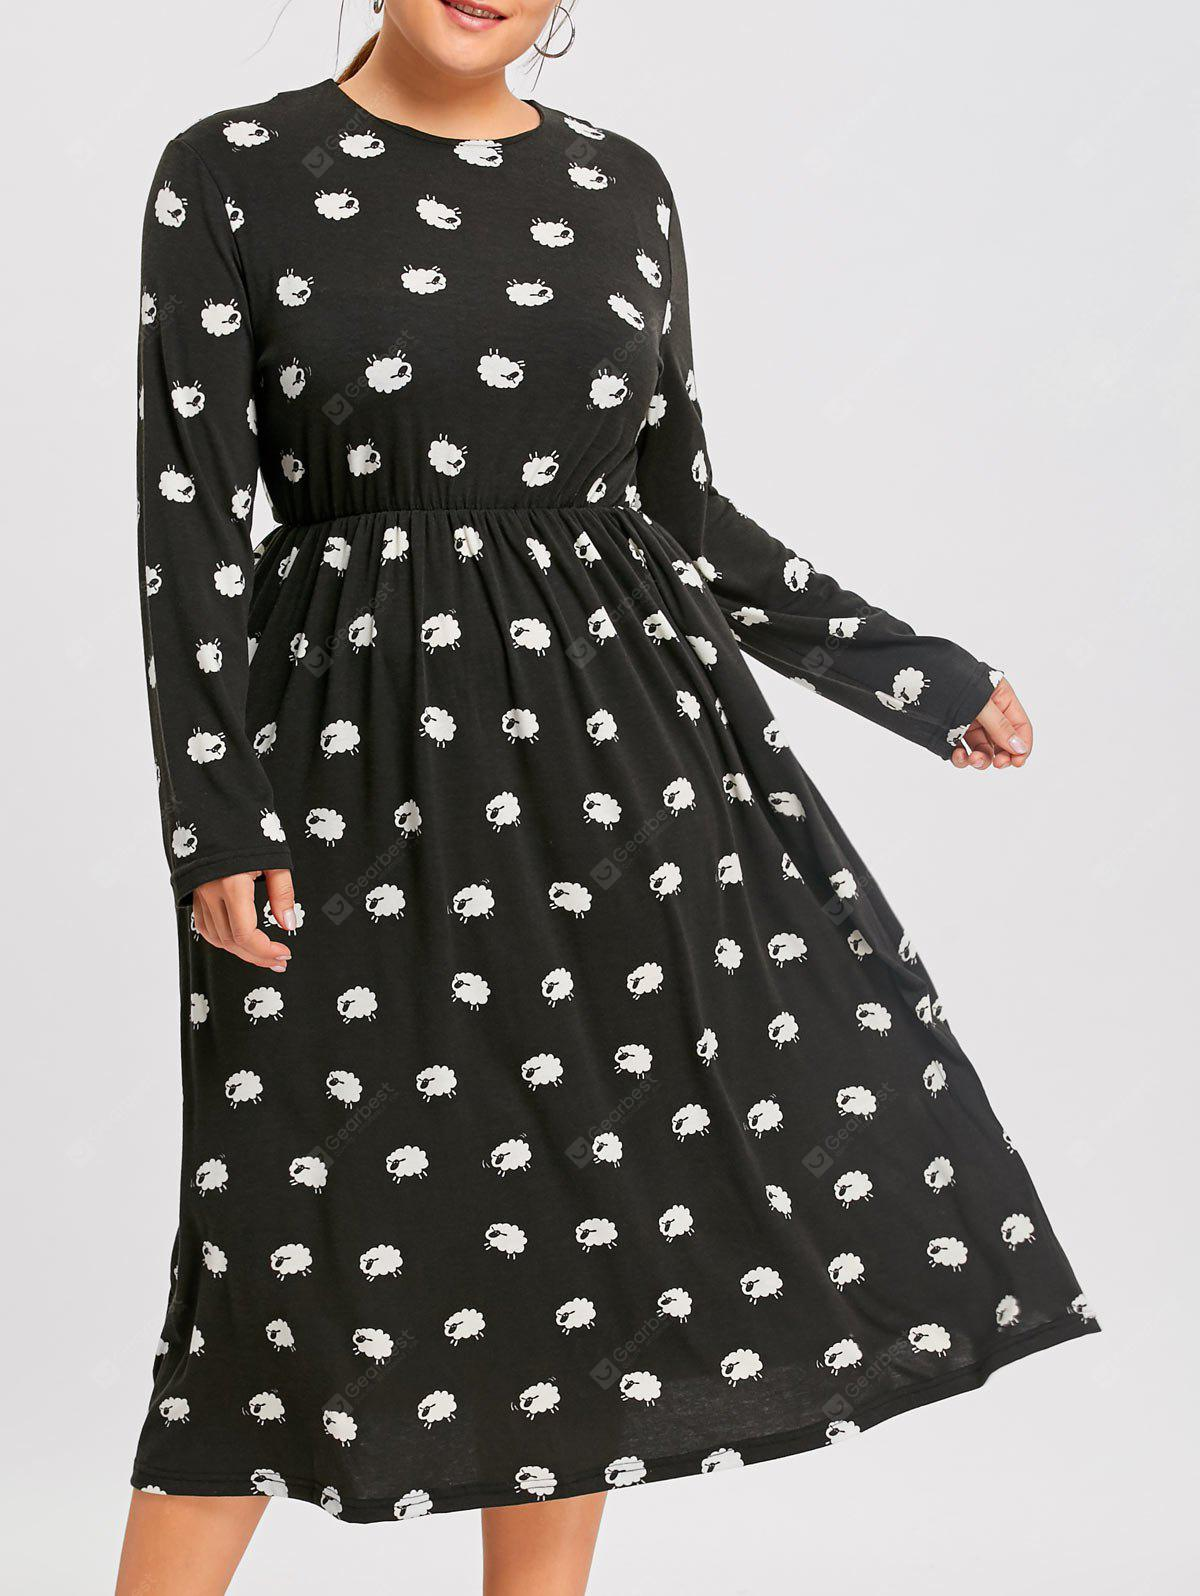 Plus Size Sheep Printed Long Sleeve Dress